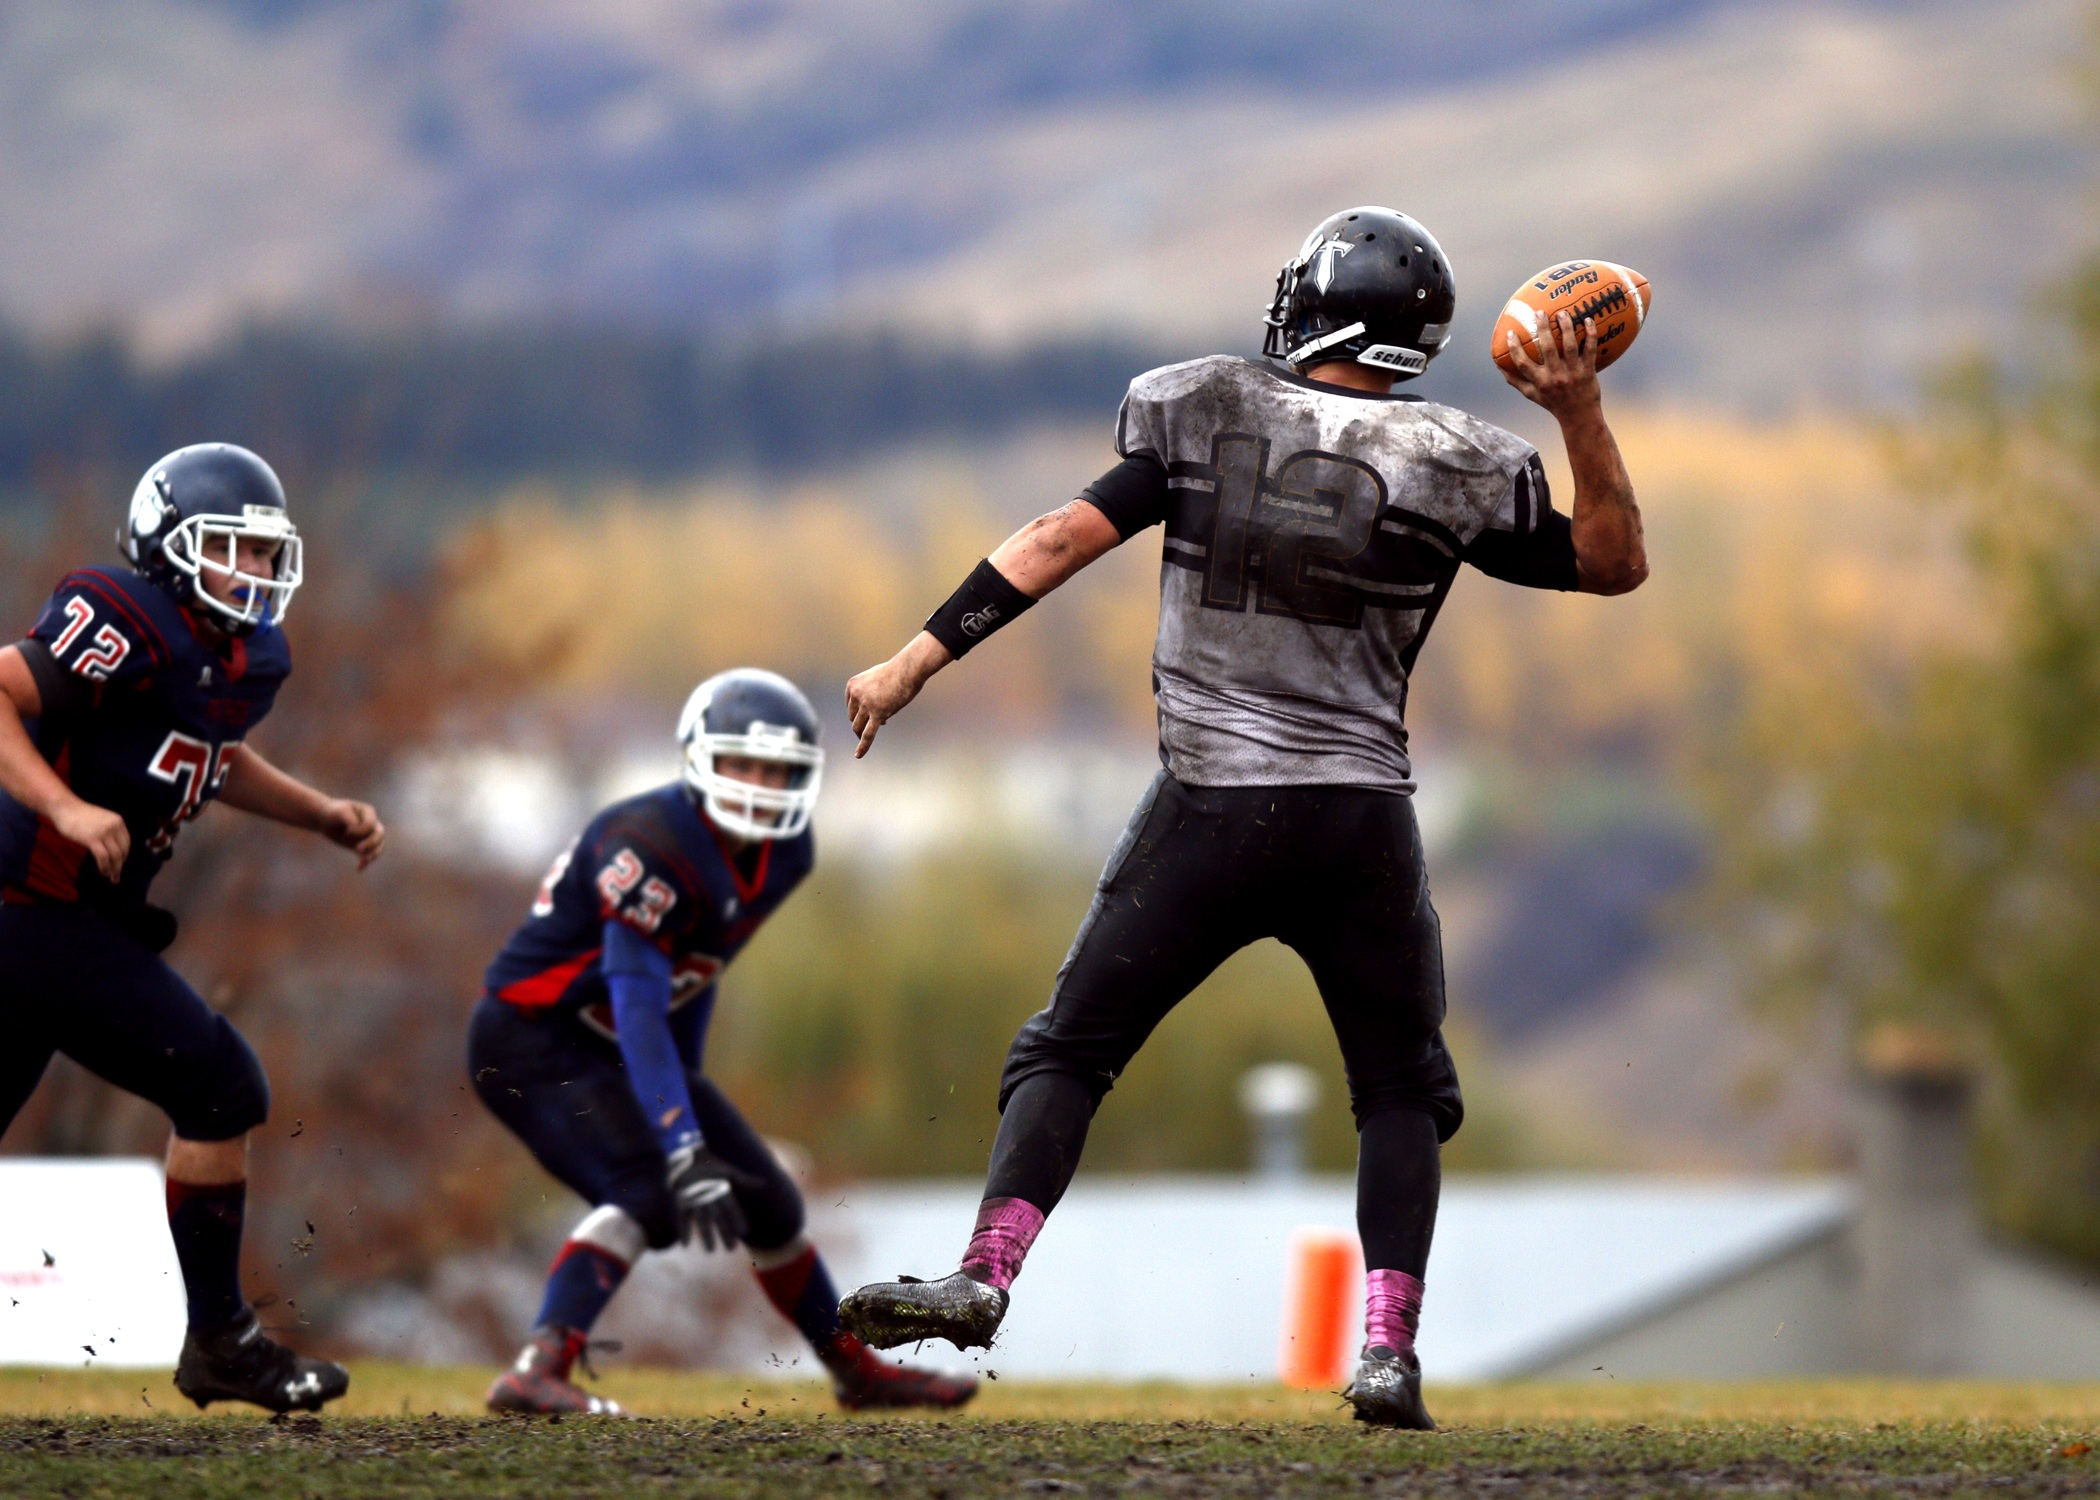 2 football player running after person holding football during daytime in shallow focus